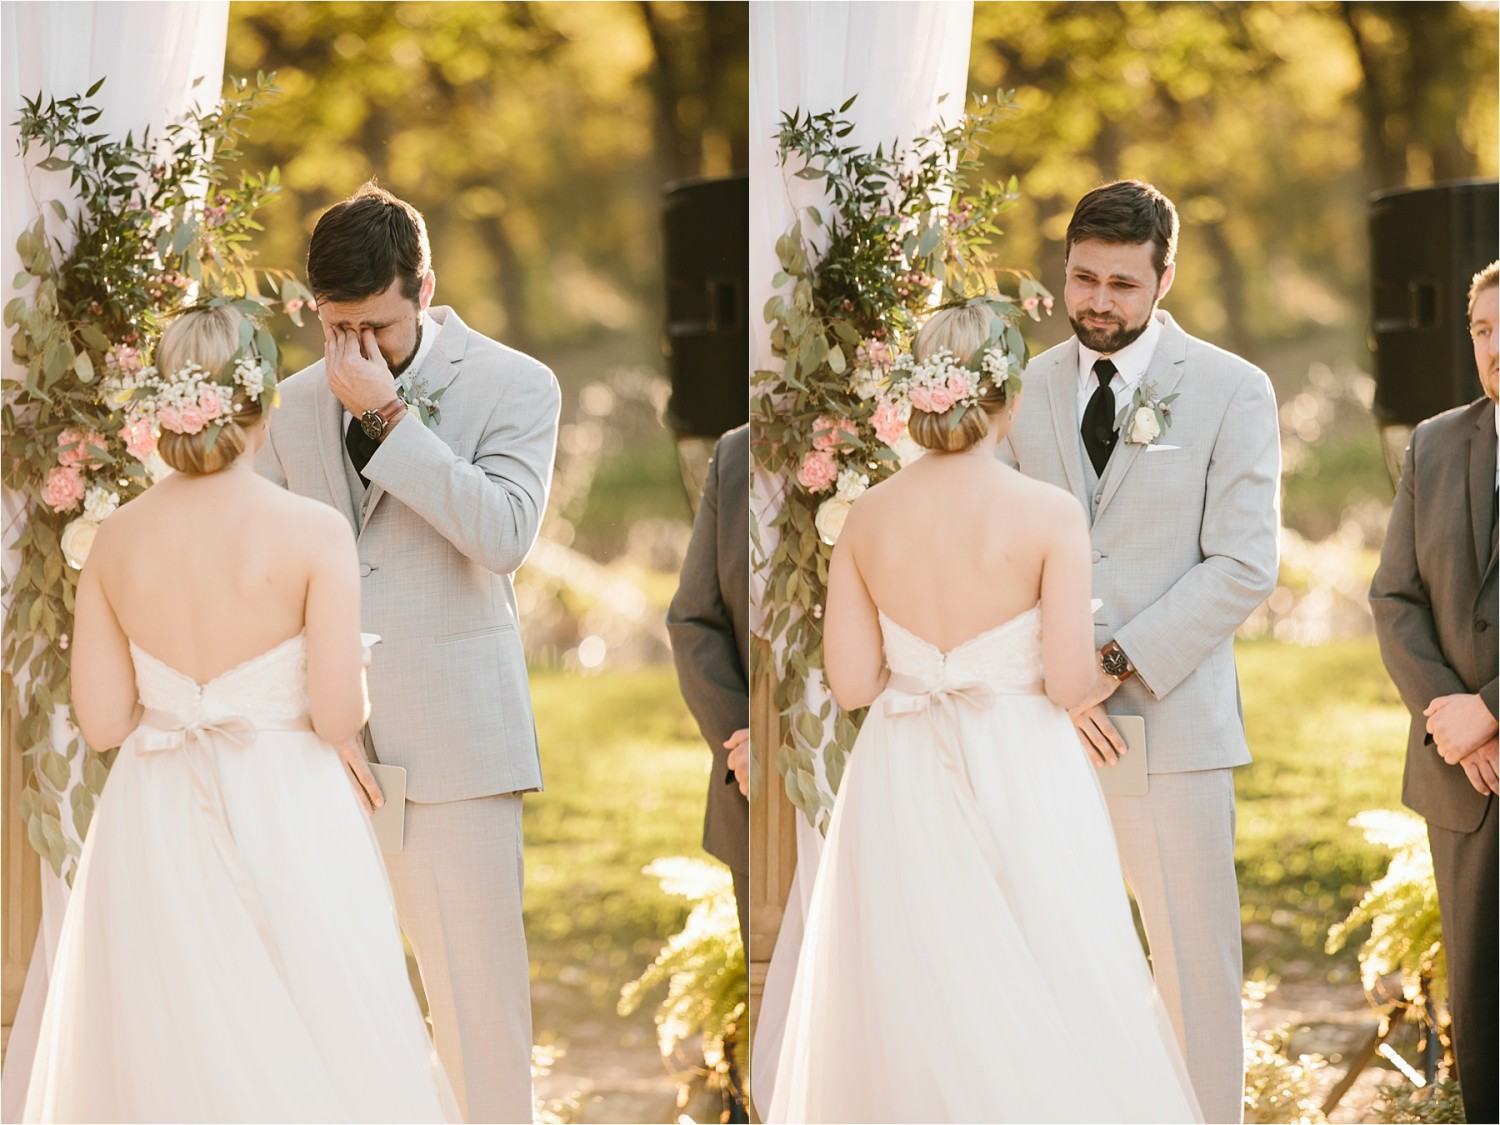 brad-lara-__-a-grey-and-blush-pink-intimate-wedding-at-hidden-waters-event-center-in-waxahachie-tx-by-north-texas-wedding-photographer-rachel-meagan-photography-_-050